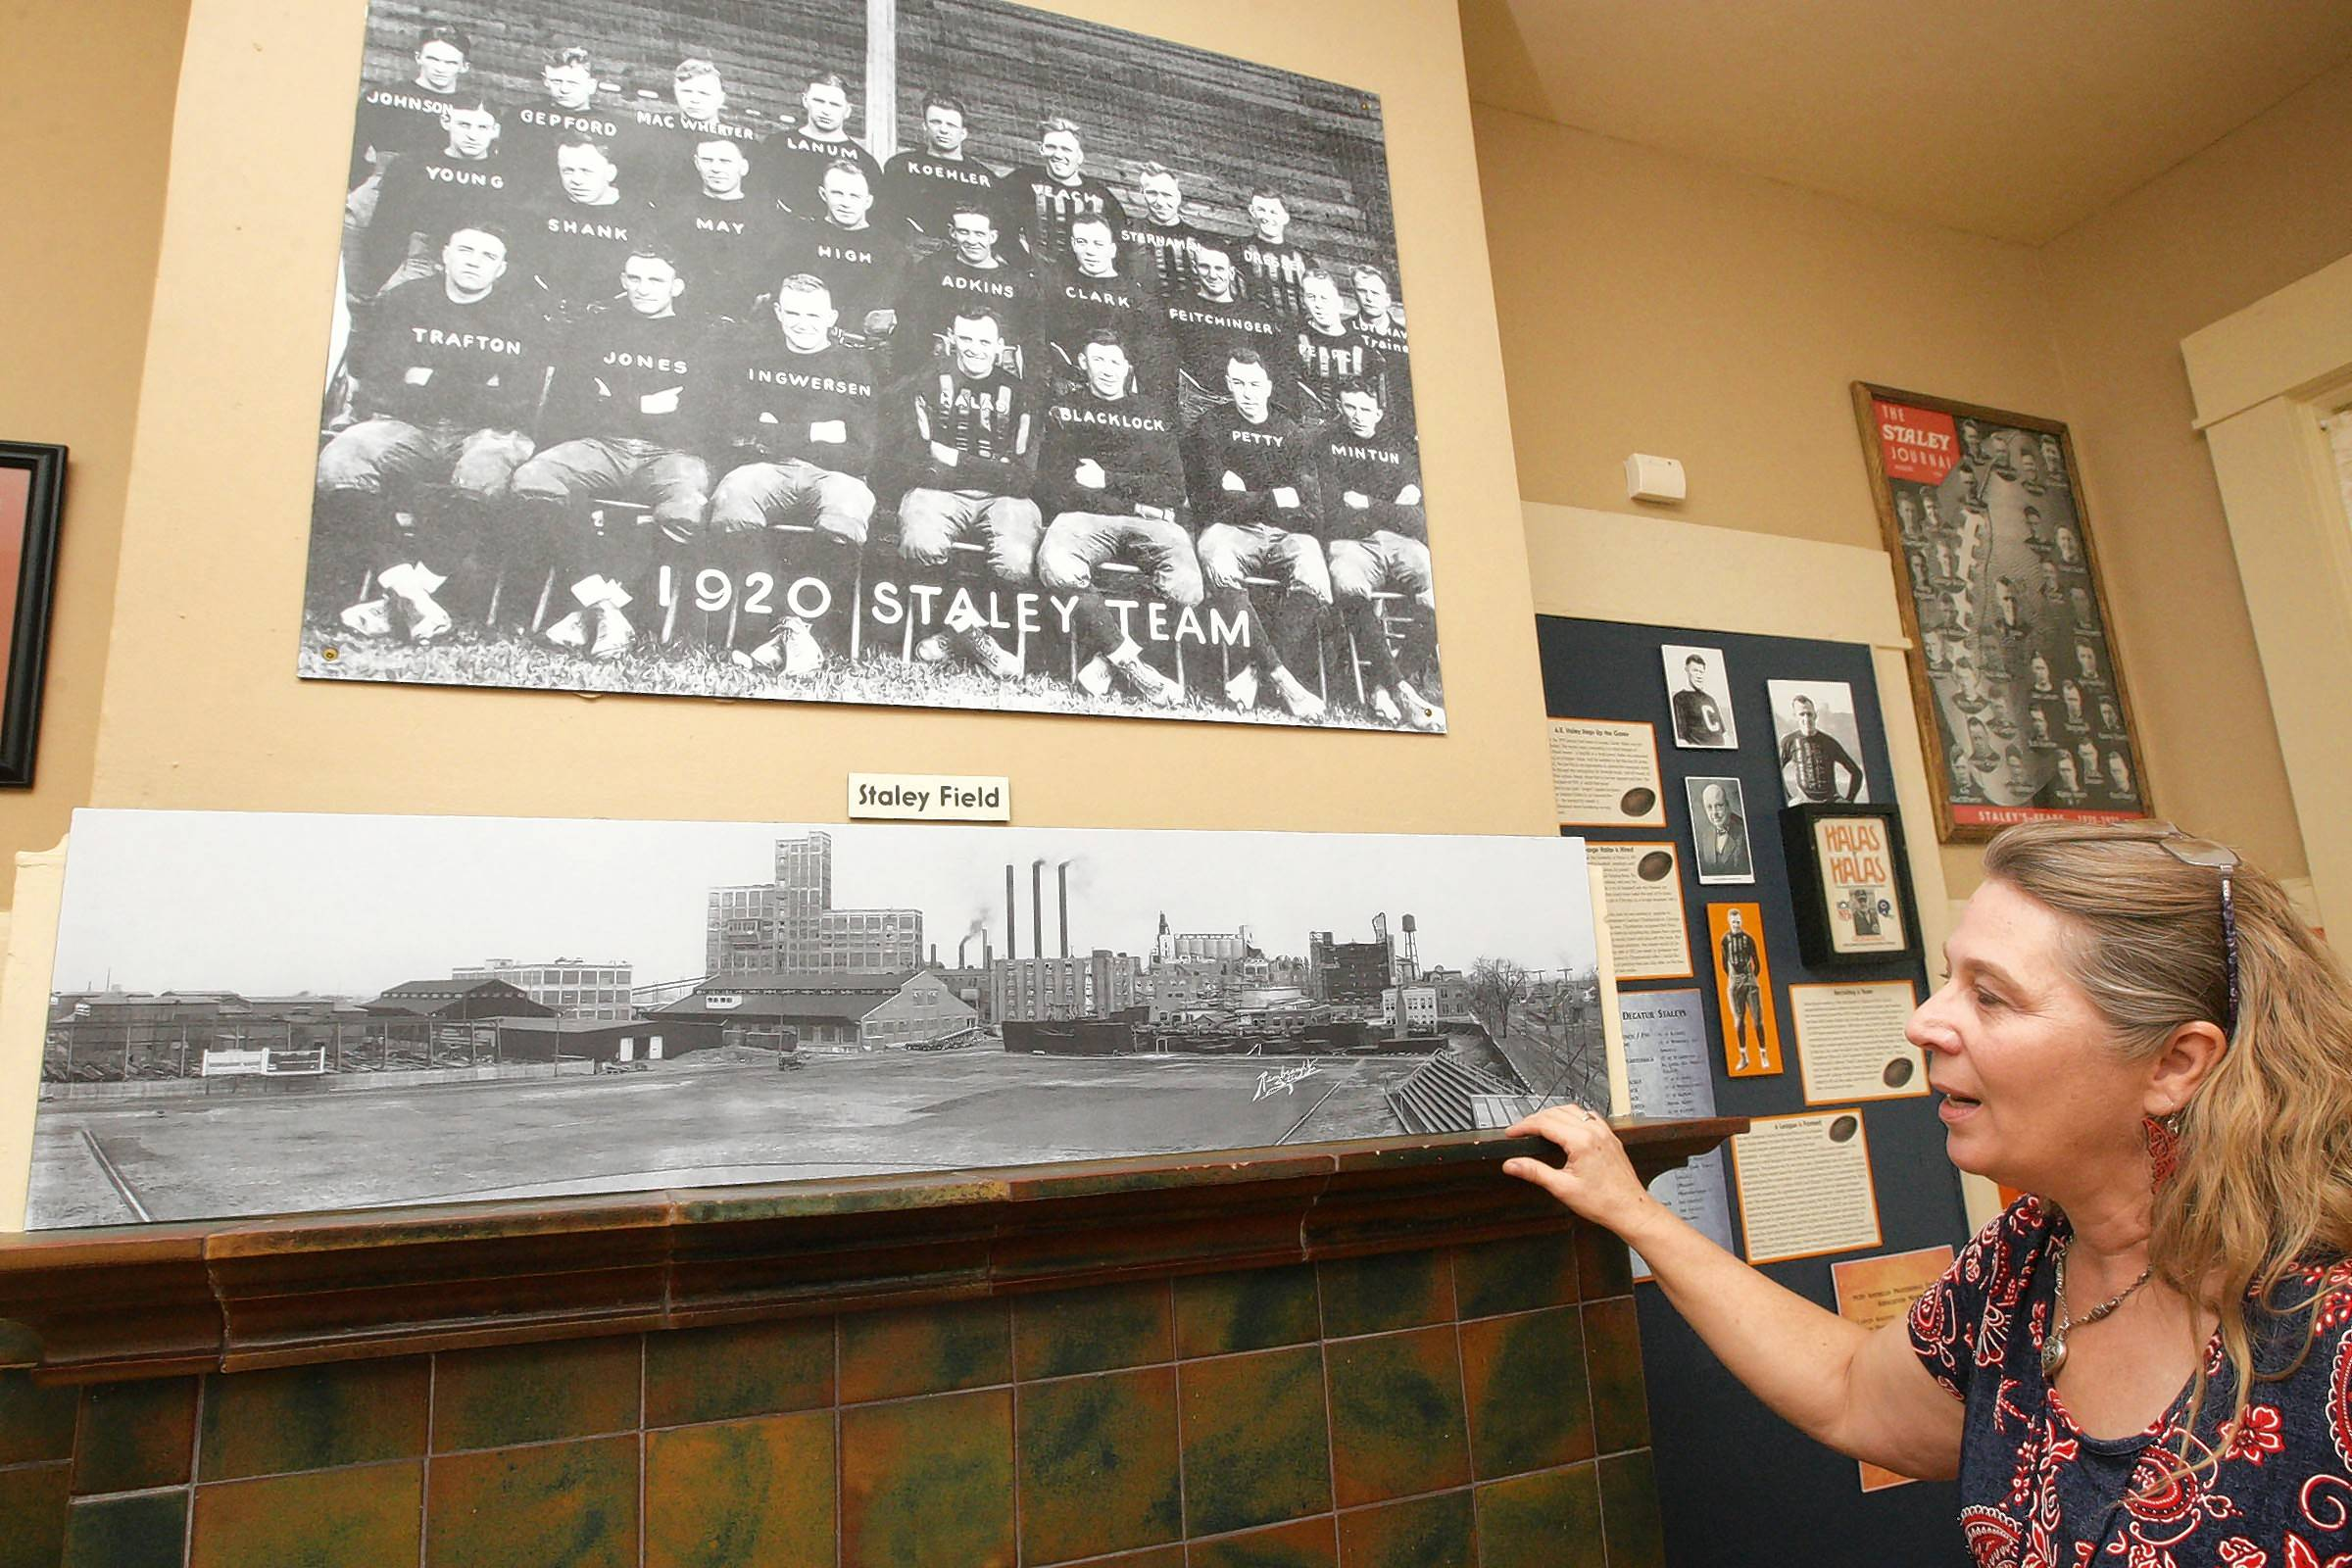 Laura Jahr, director of the Staley Museum in Decatur, shows a team photo of the Decatur Staleys football team. The team later became the Chicago Bears.